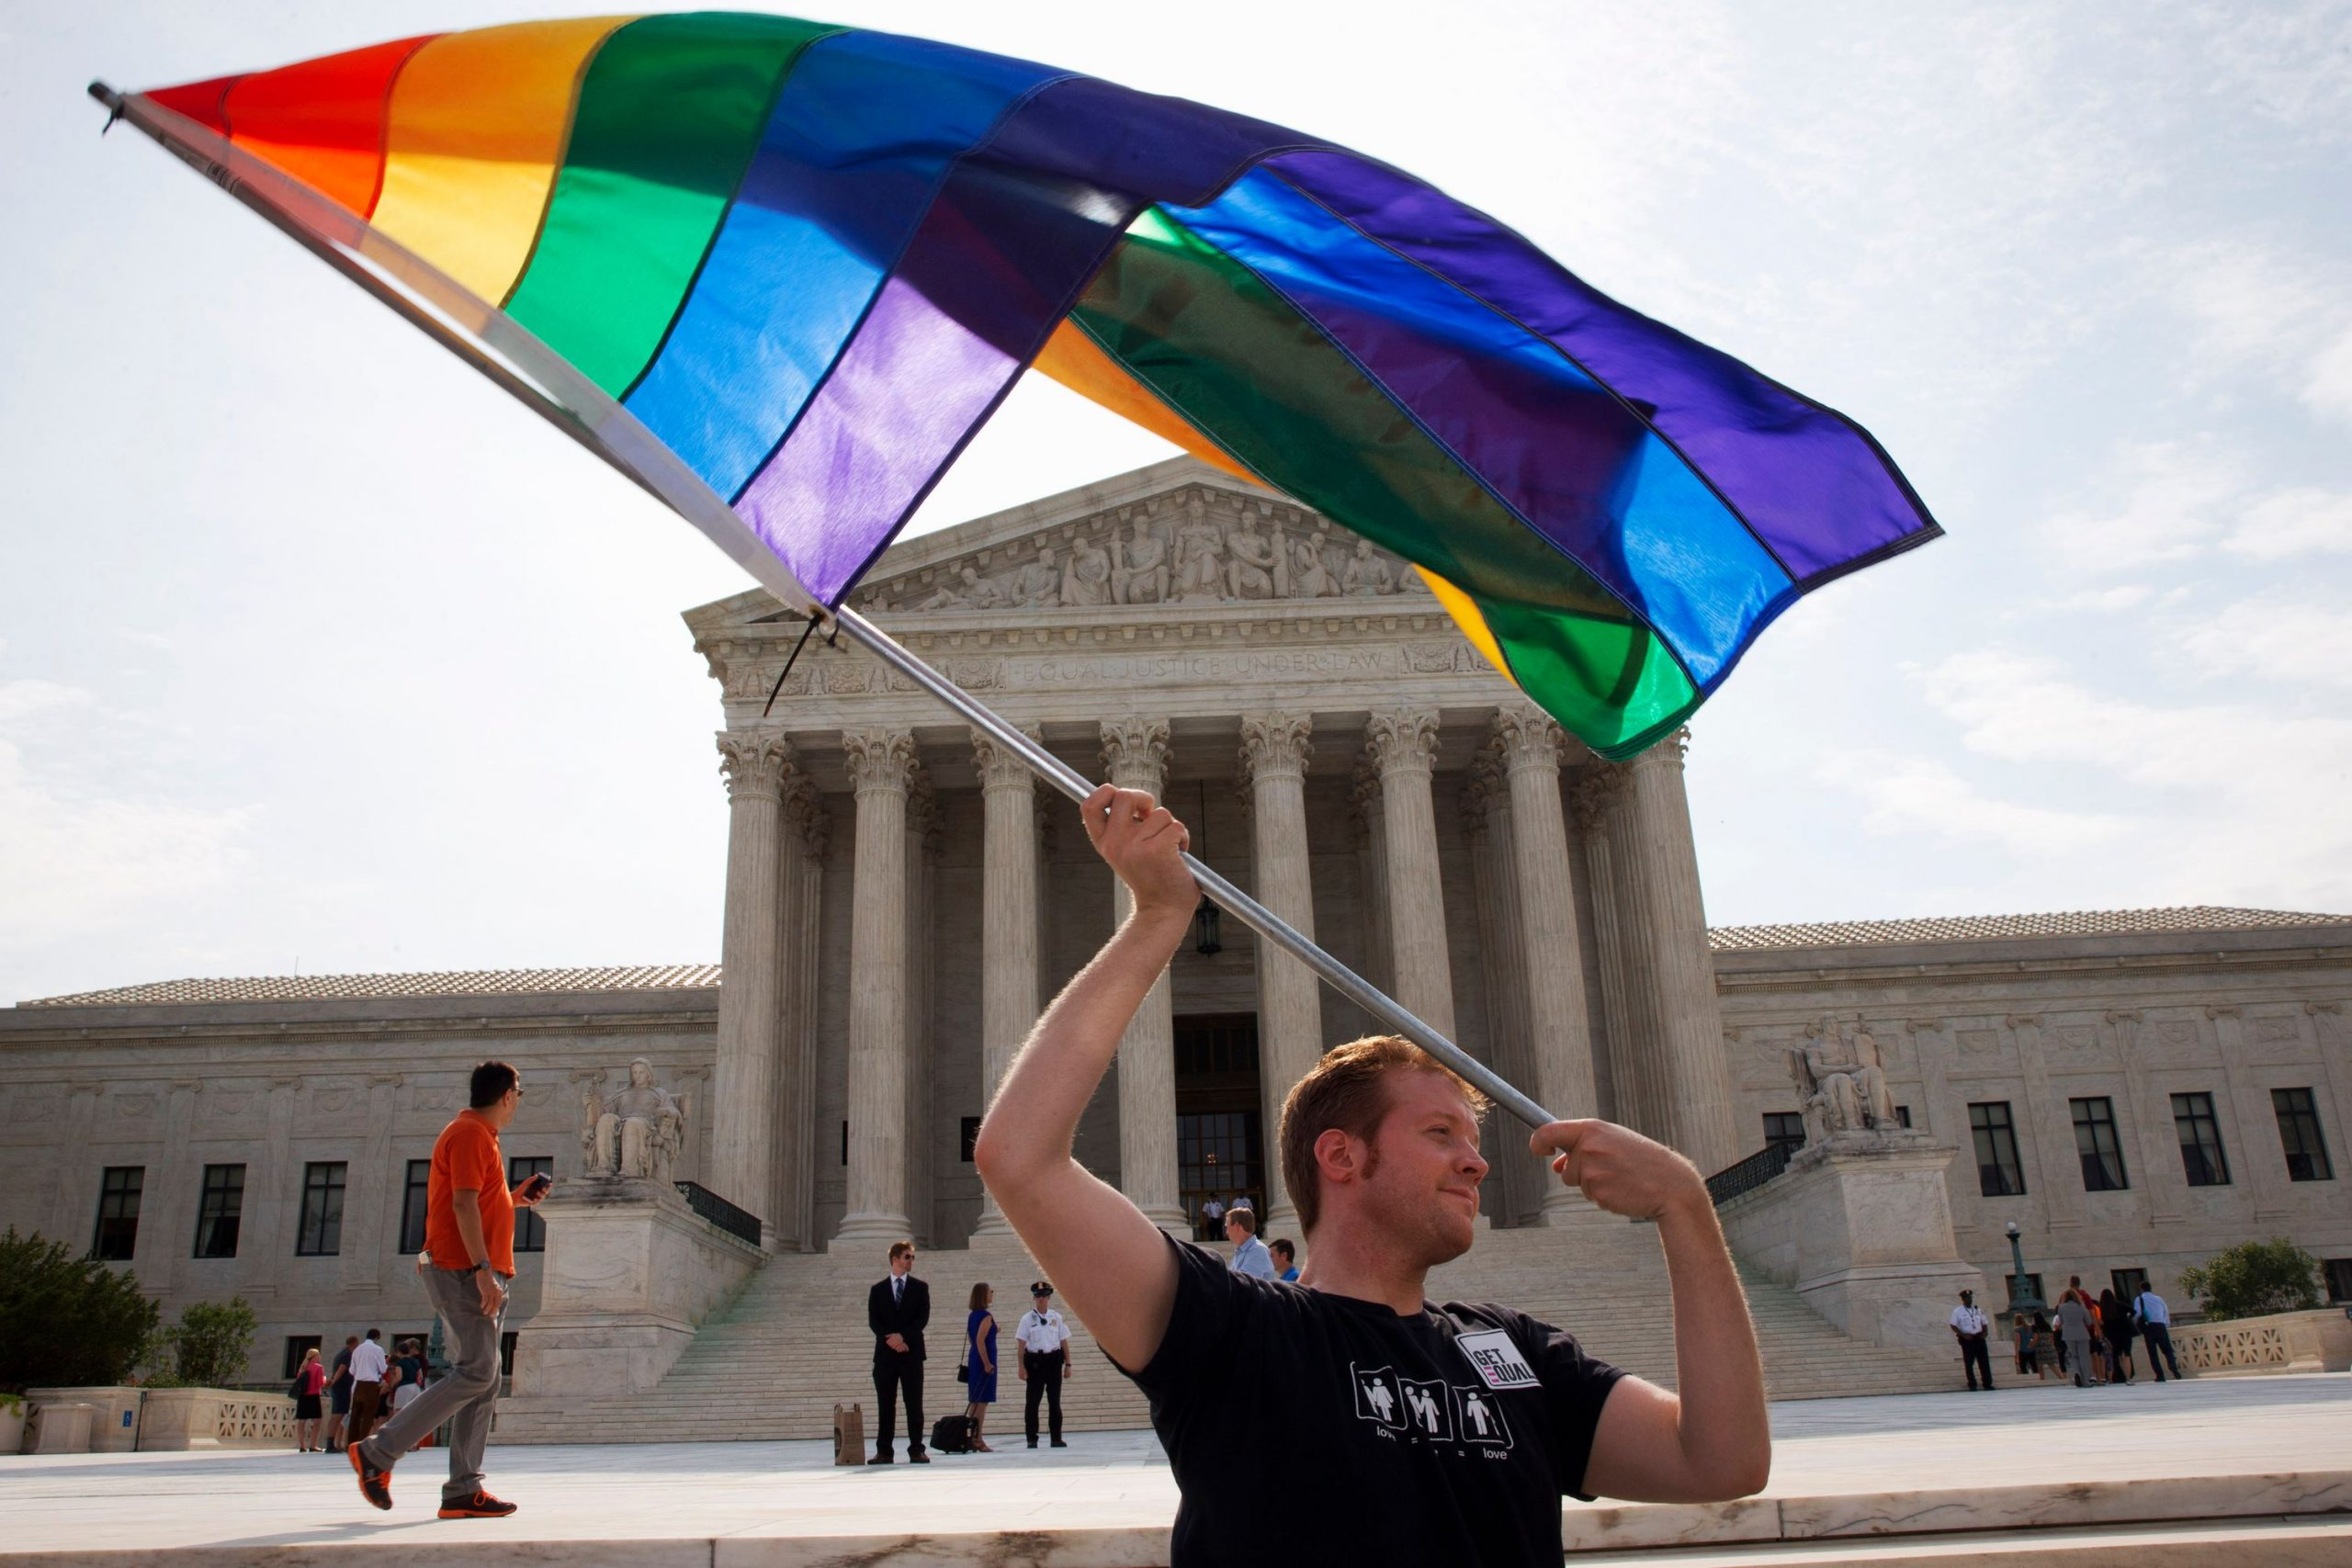 Six Years After Same-Sex Marriage, Now What?